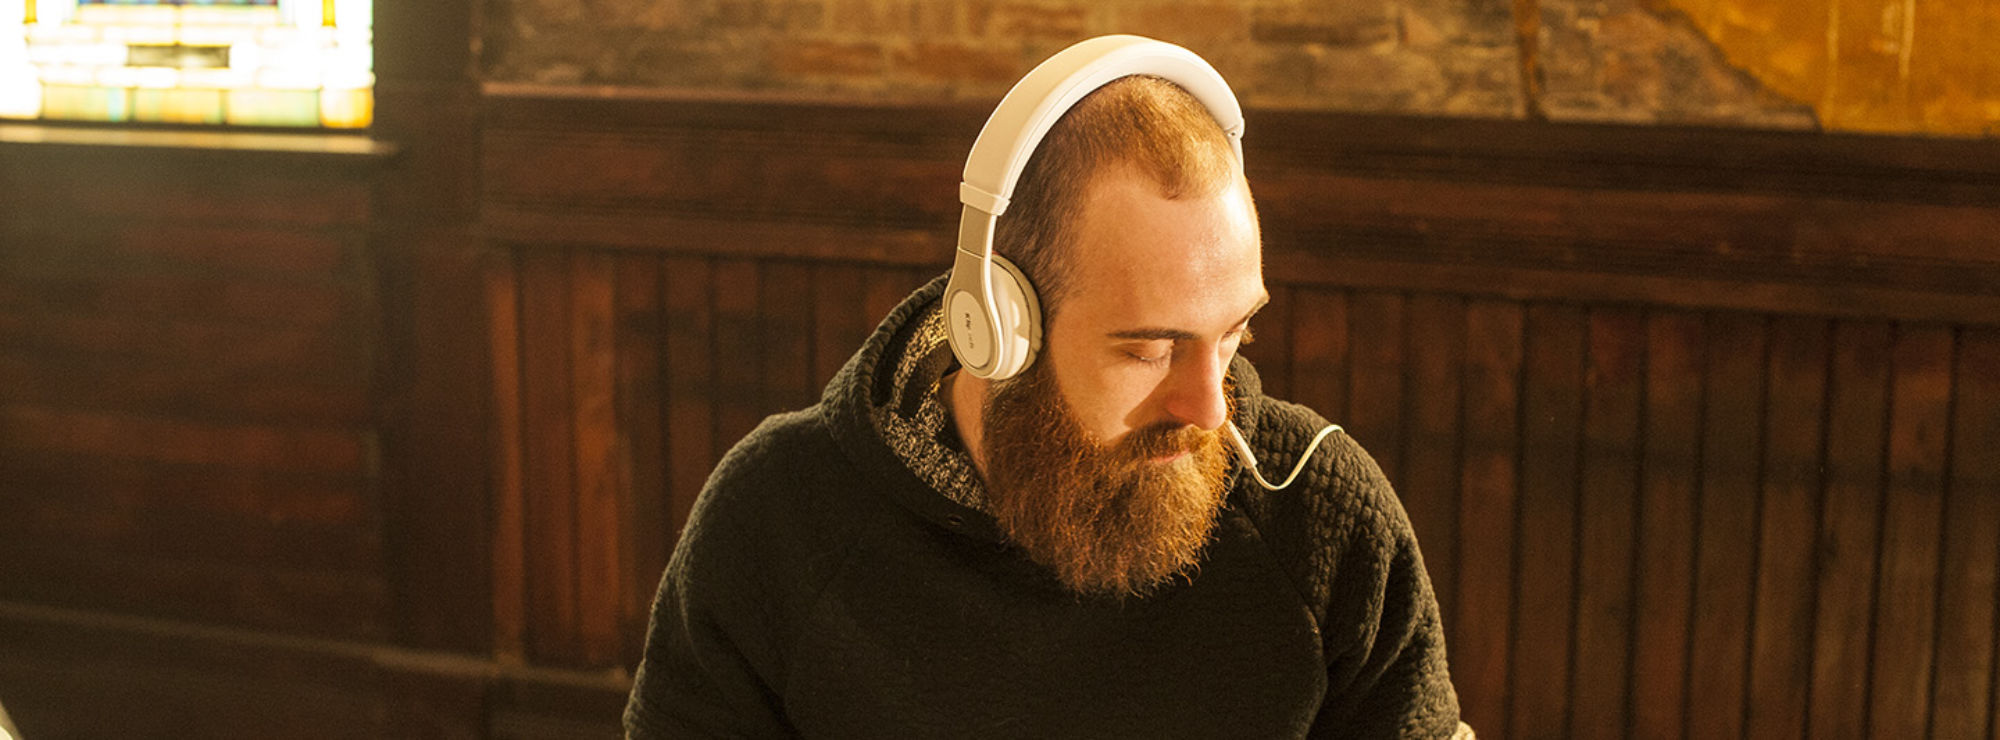 Bearded man listening to Klipsch headphones